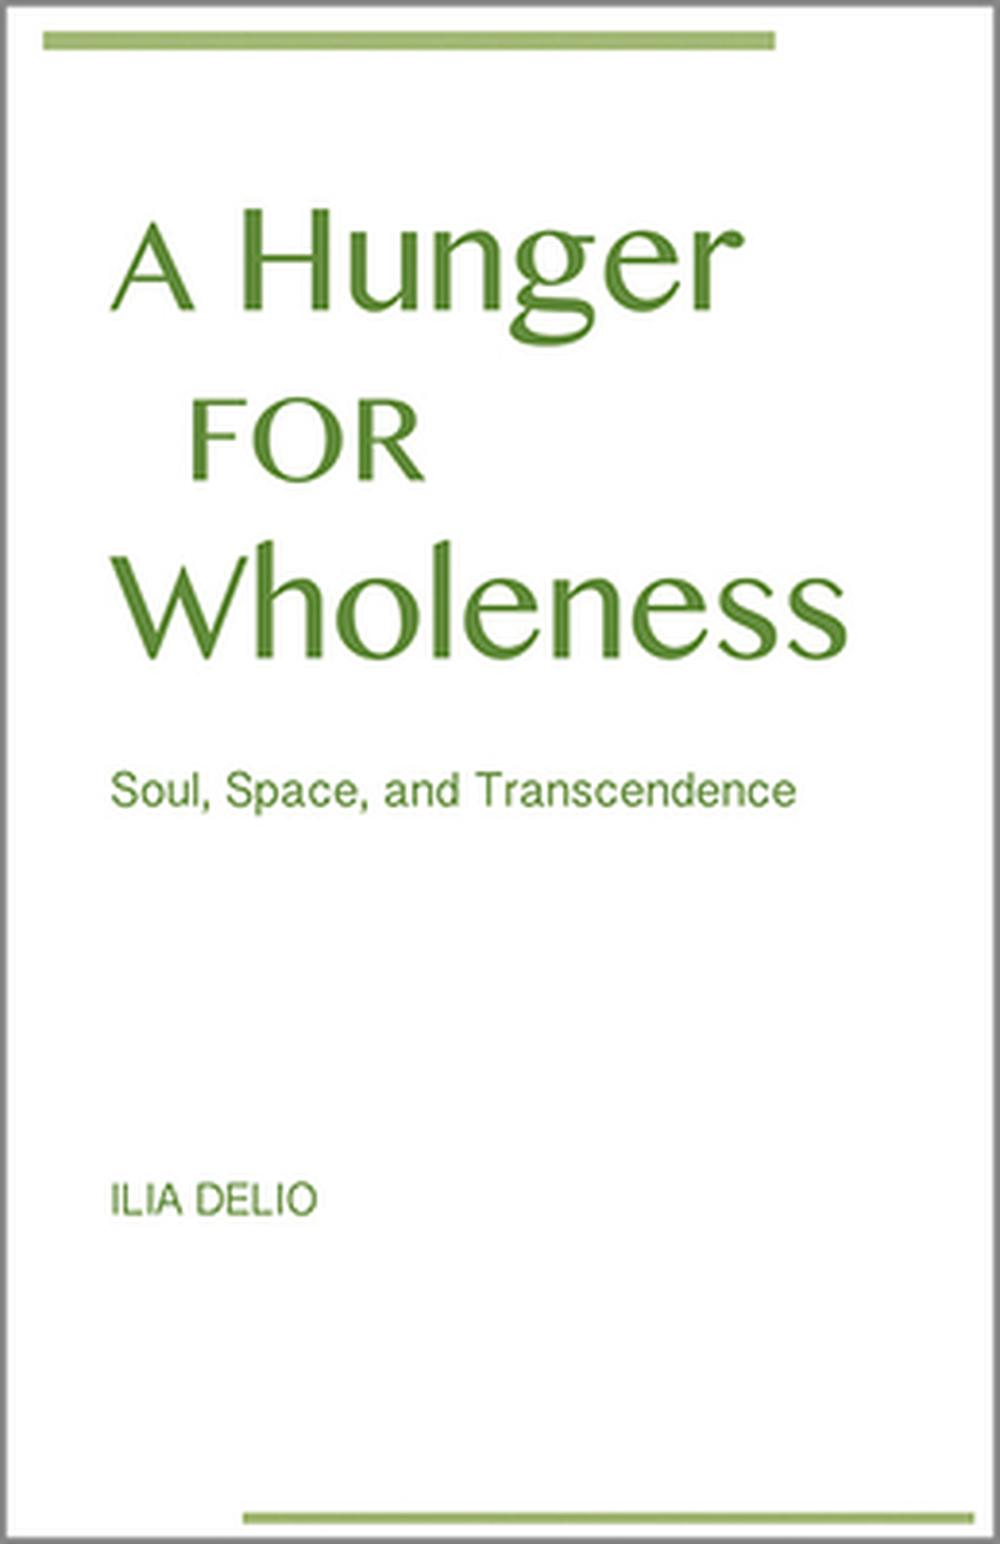 A Hunger for WholenessSoul, Space, and Transcendence